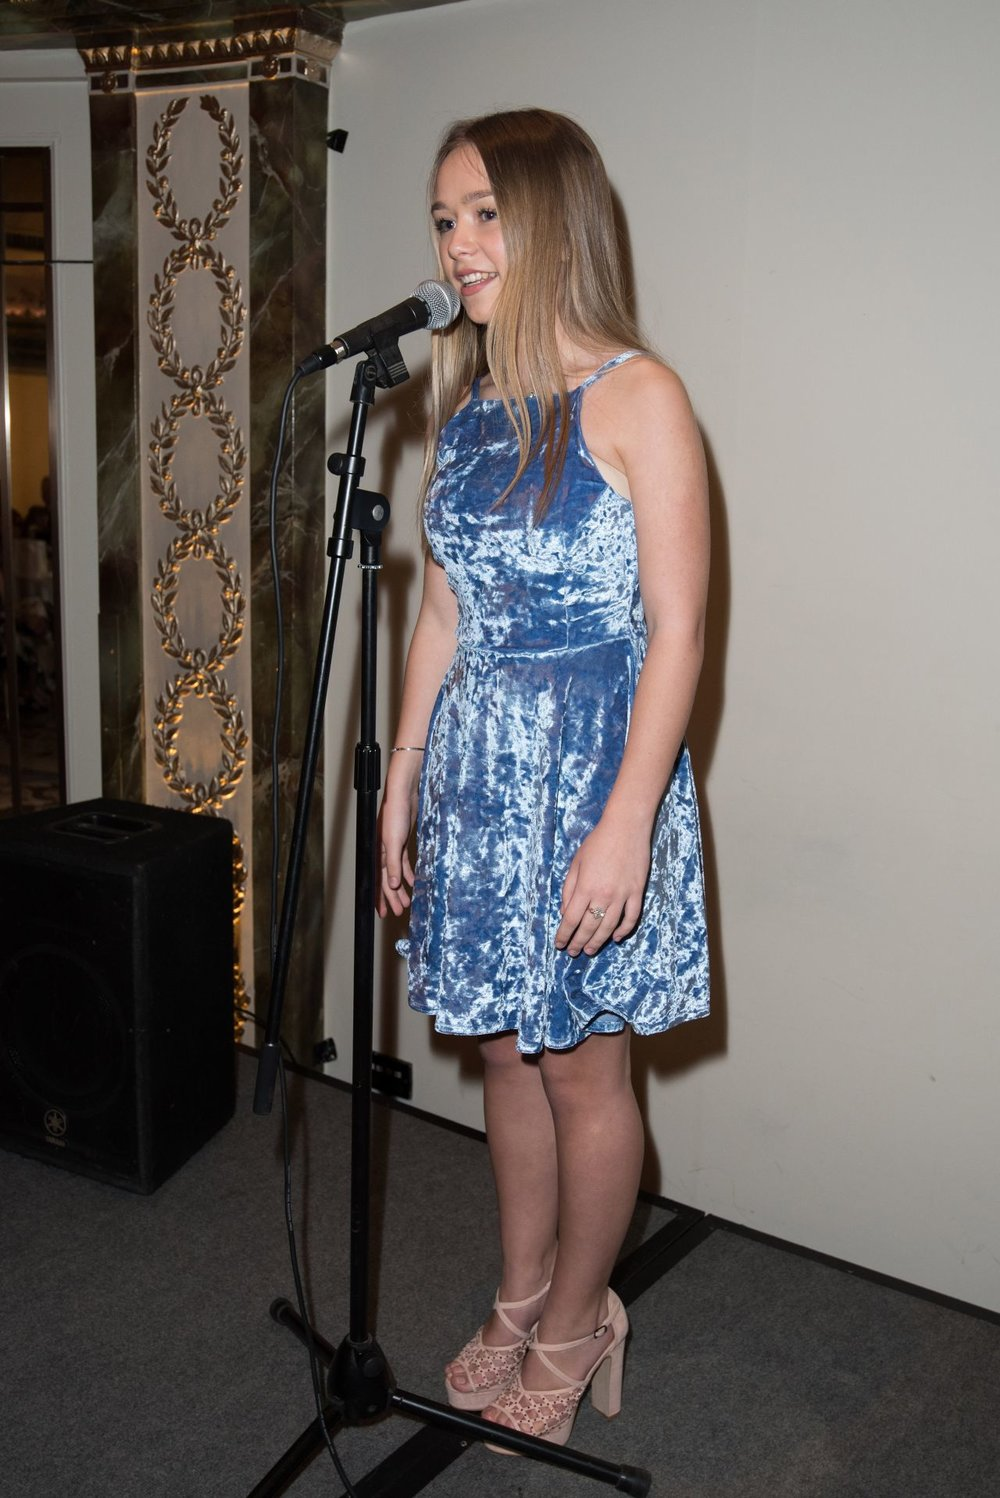 connie-talbot-shooting-star-chase-children-s-hospice-at-the-dorchester-london-05-26-2017-6.jpg